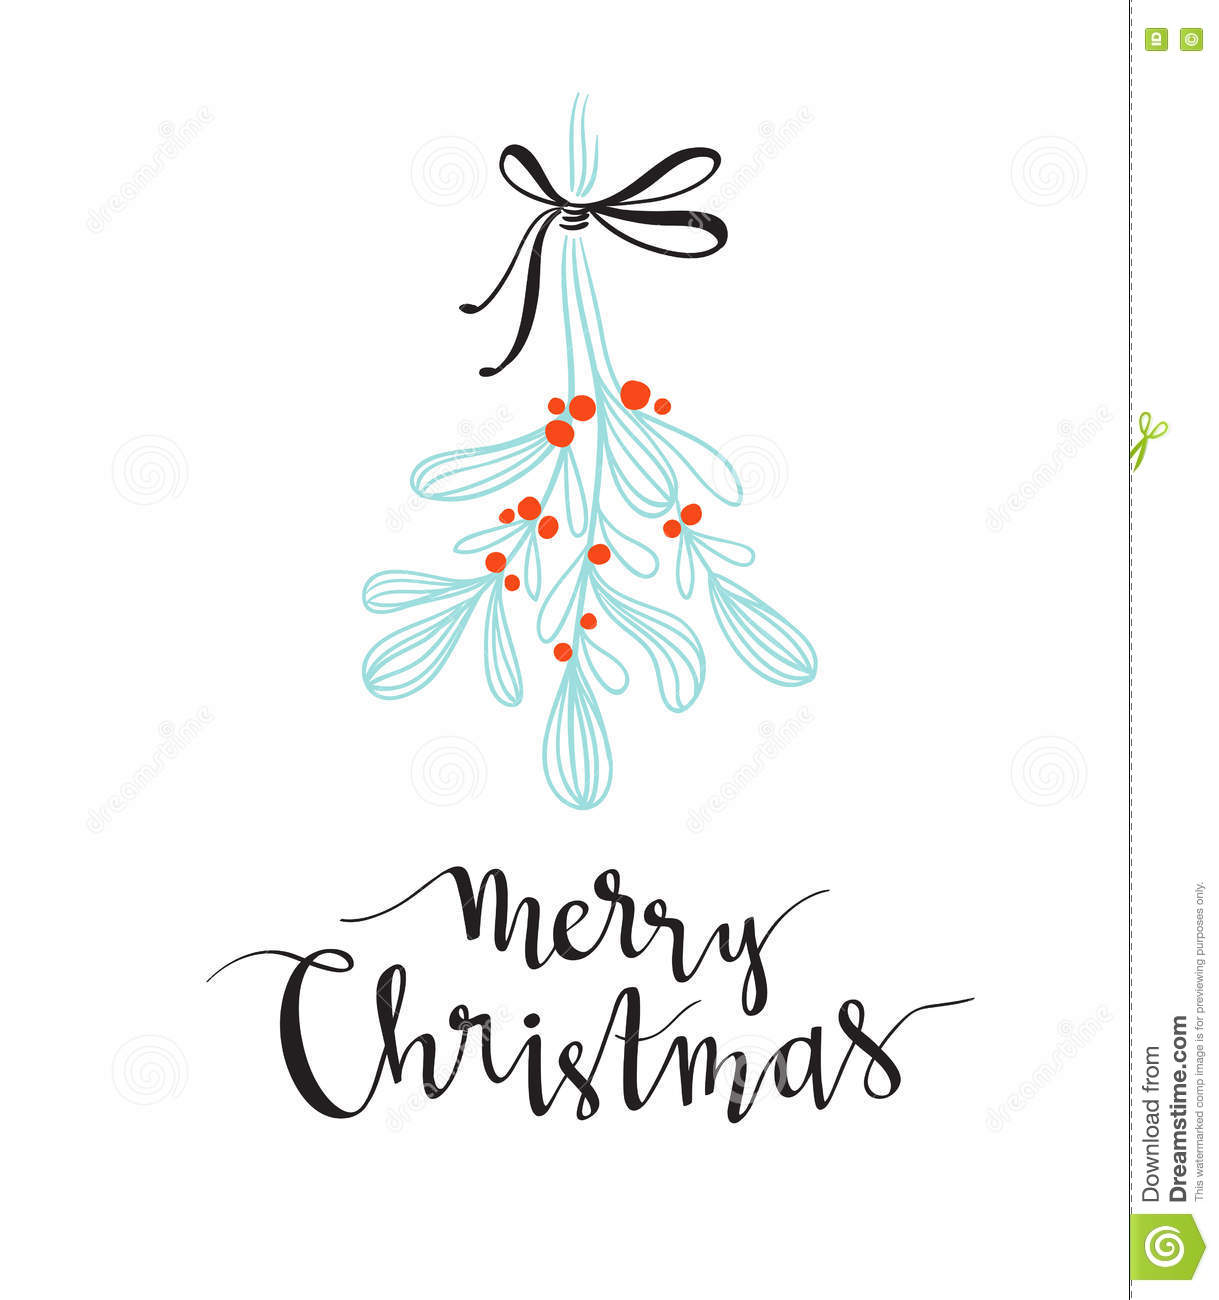 Christmas sprig of mistletoe with holiday lettering merry christmas sprig of mistletoe with holiday lettering merry christmas vector illustration for greeting cards invitations buycottarizona Image collections